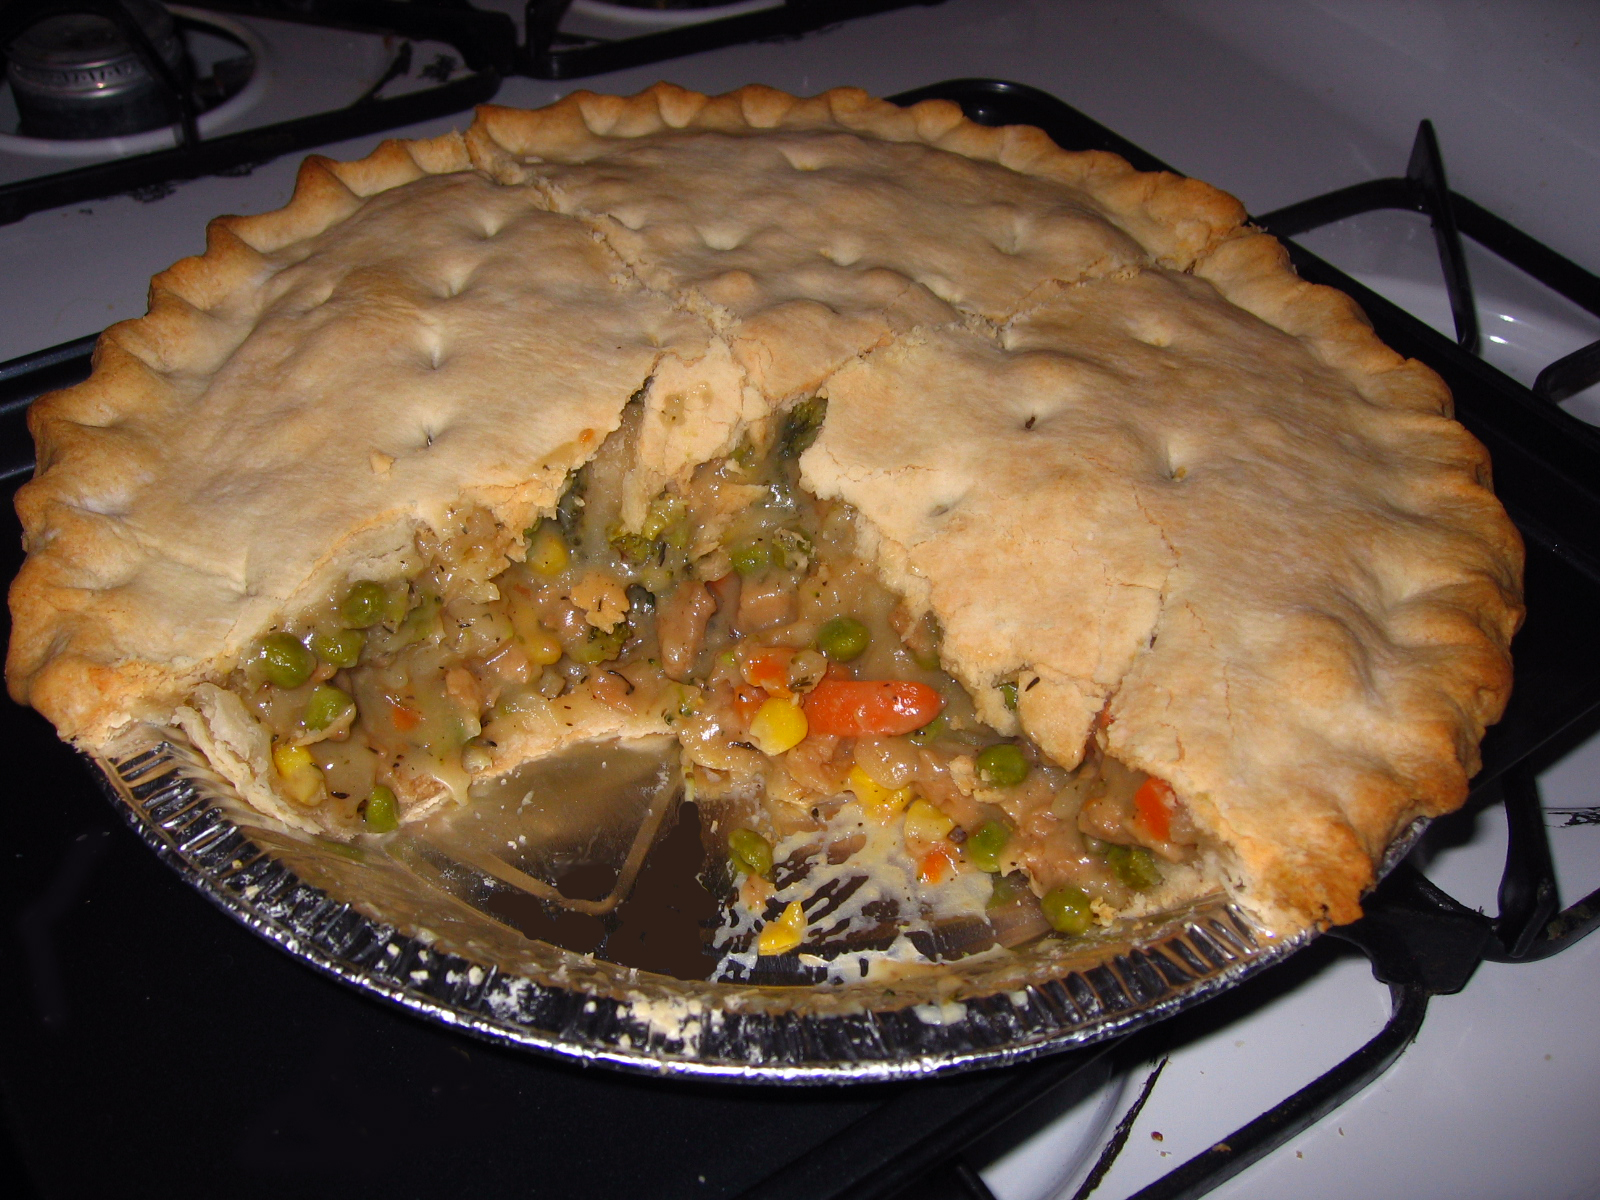 ... Planner - Recipe - Mama Wilson's Vegetarian Pot Pie by Kevinrosswilson